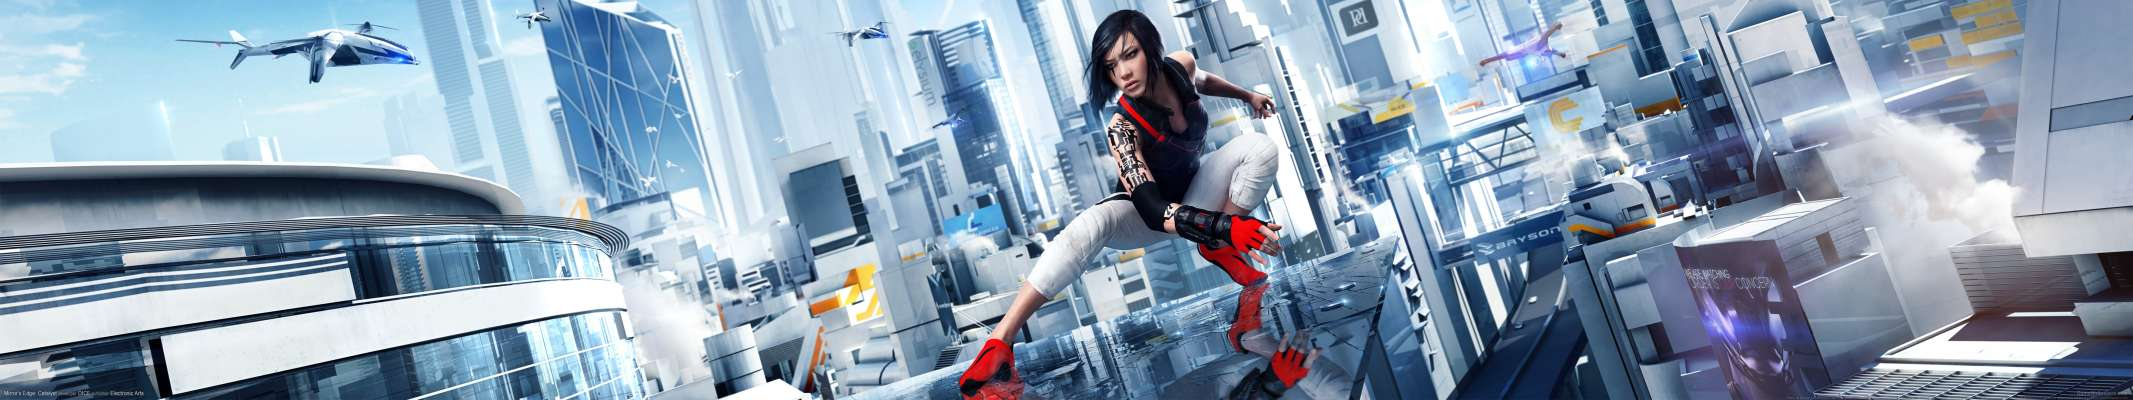 Mirror's Edge: Catalyst triple screen fondo de escritorio